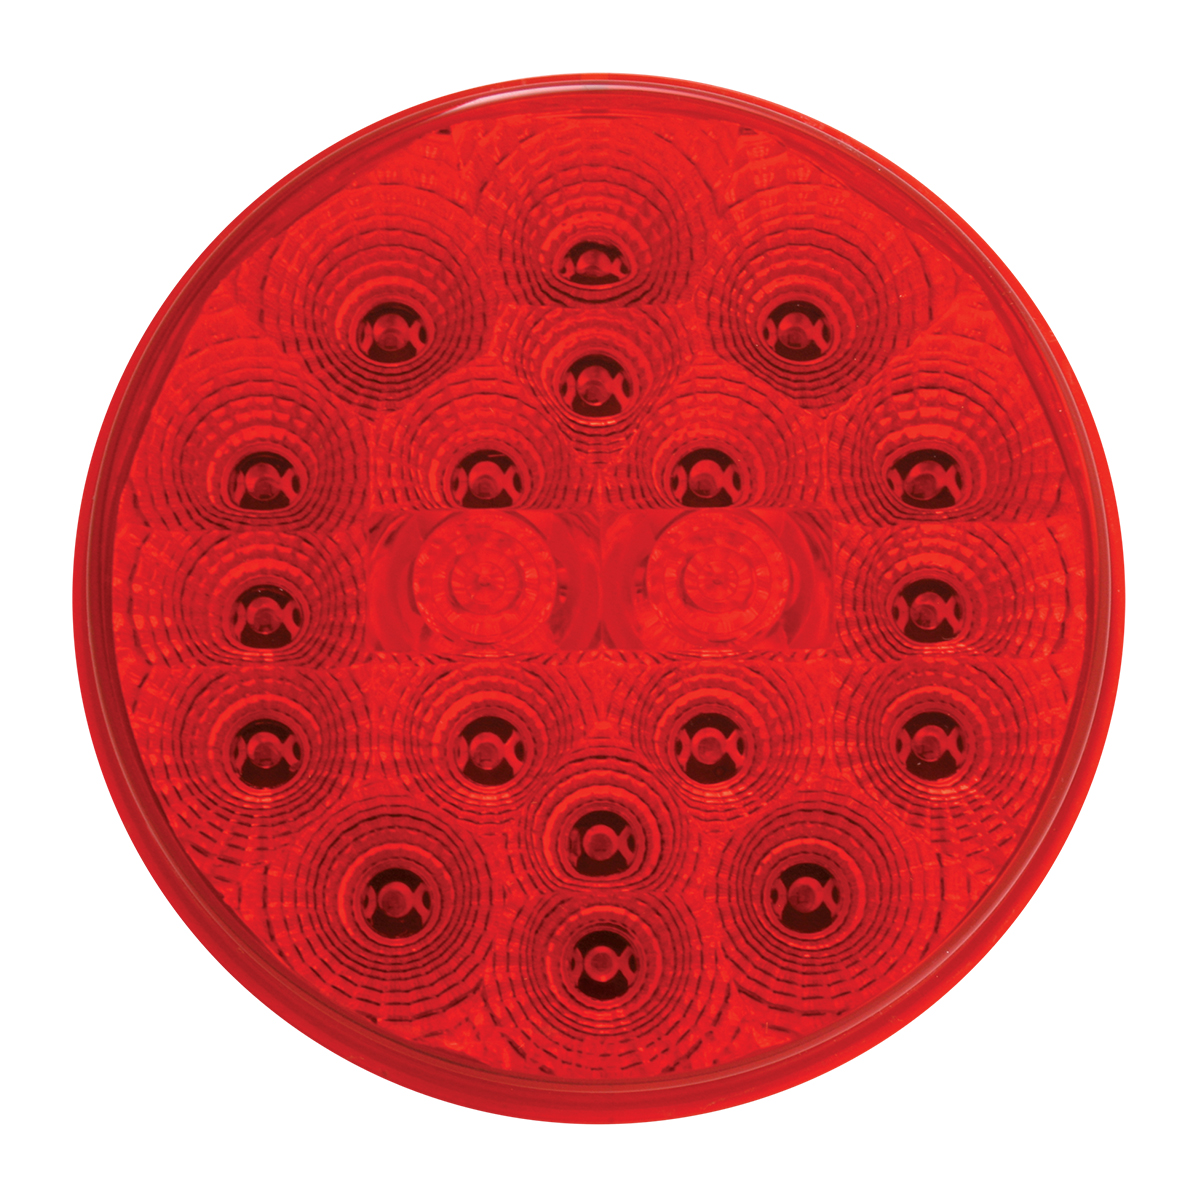 "77093 4"" Spyder LED Light in Red/Red"